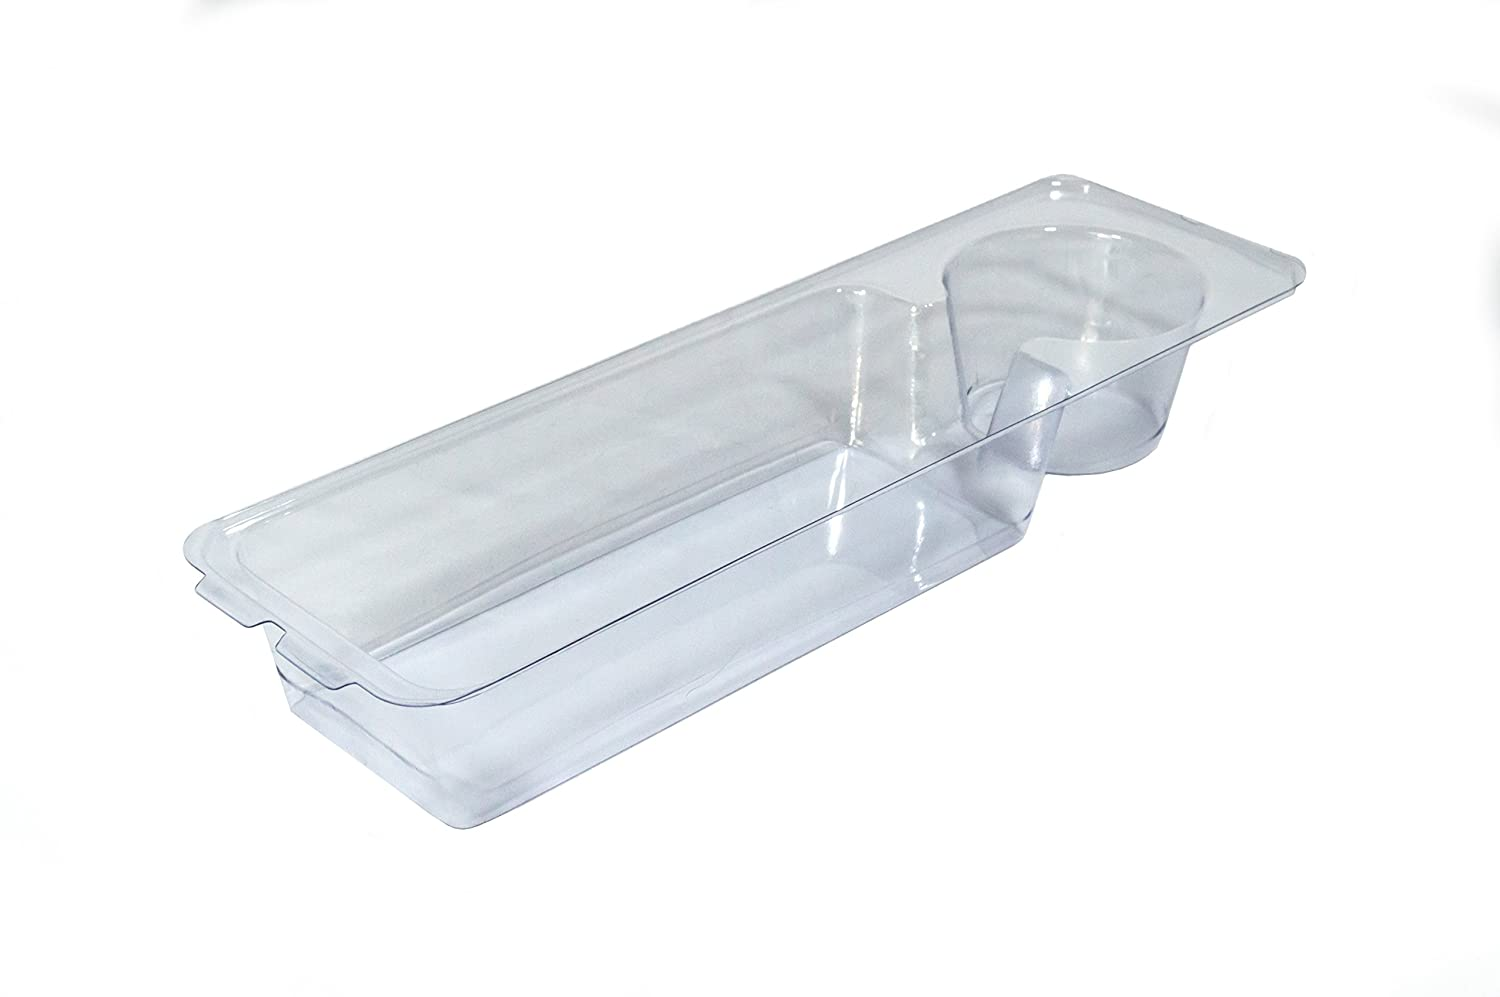 Heavy Duty Clear Plastic Insert/Tray/Cup Holder for Walker Basket